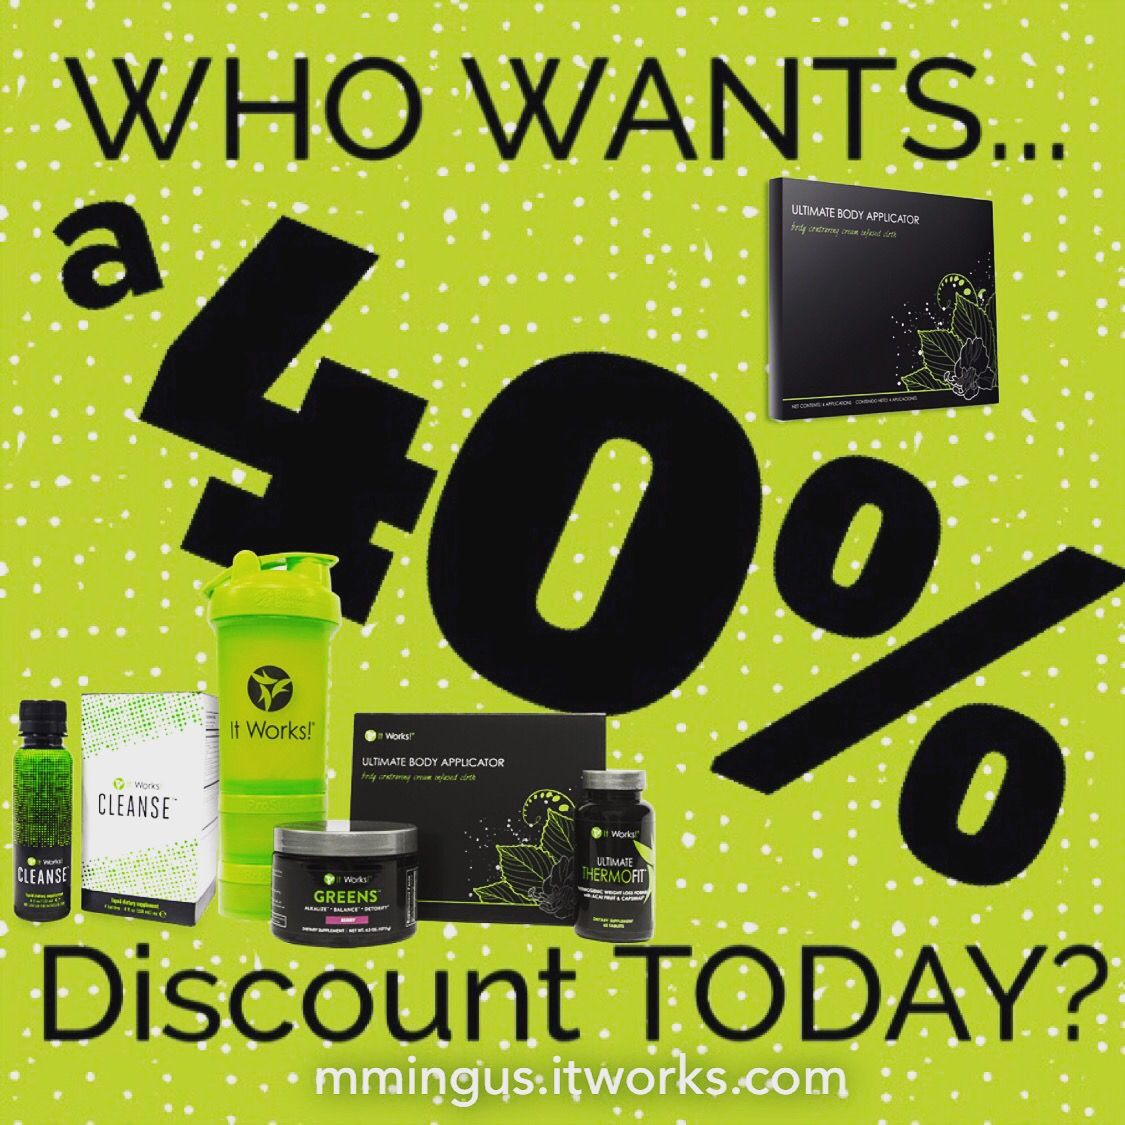 Happy St. Patrick's Day! become a LOYAL CUSTOMER today and get 40% OFF! PM me or text 40% to 385-209-4766